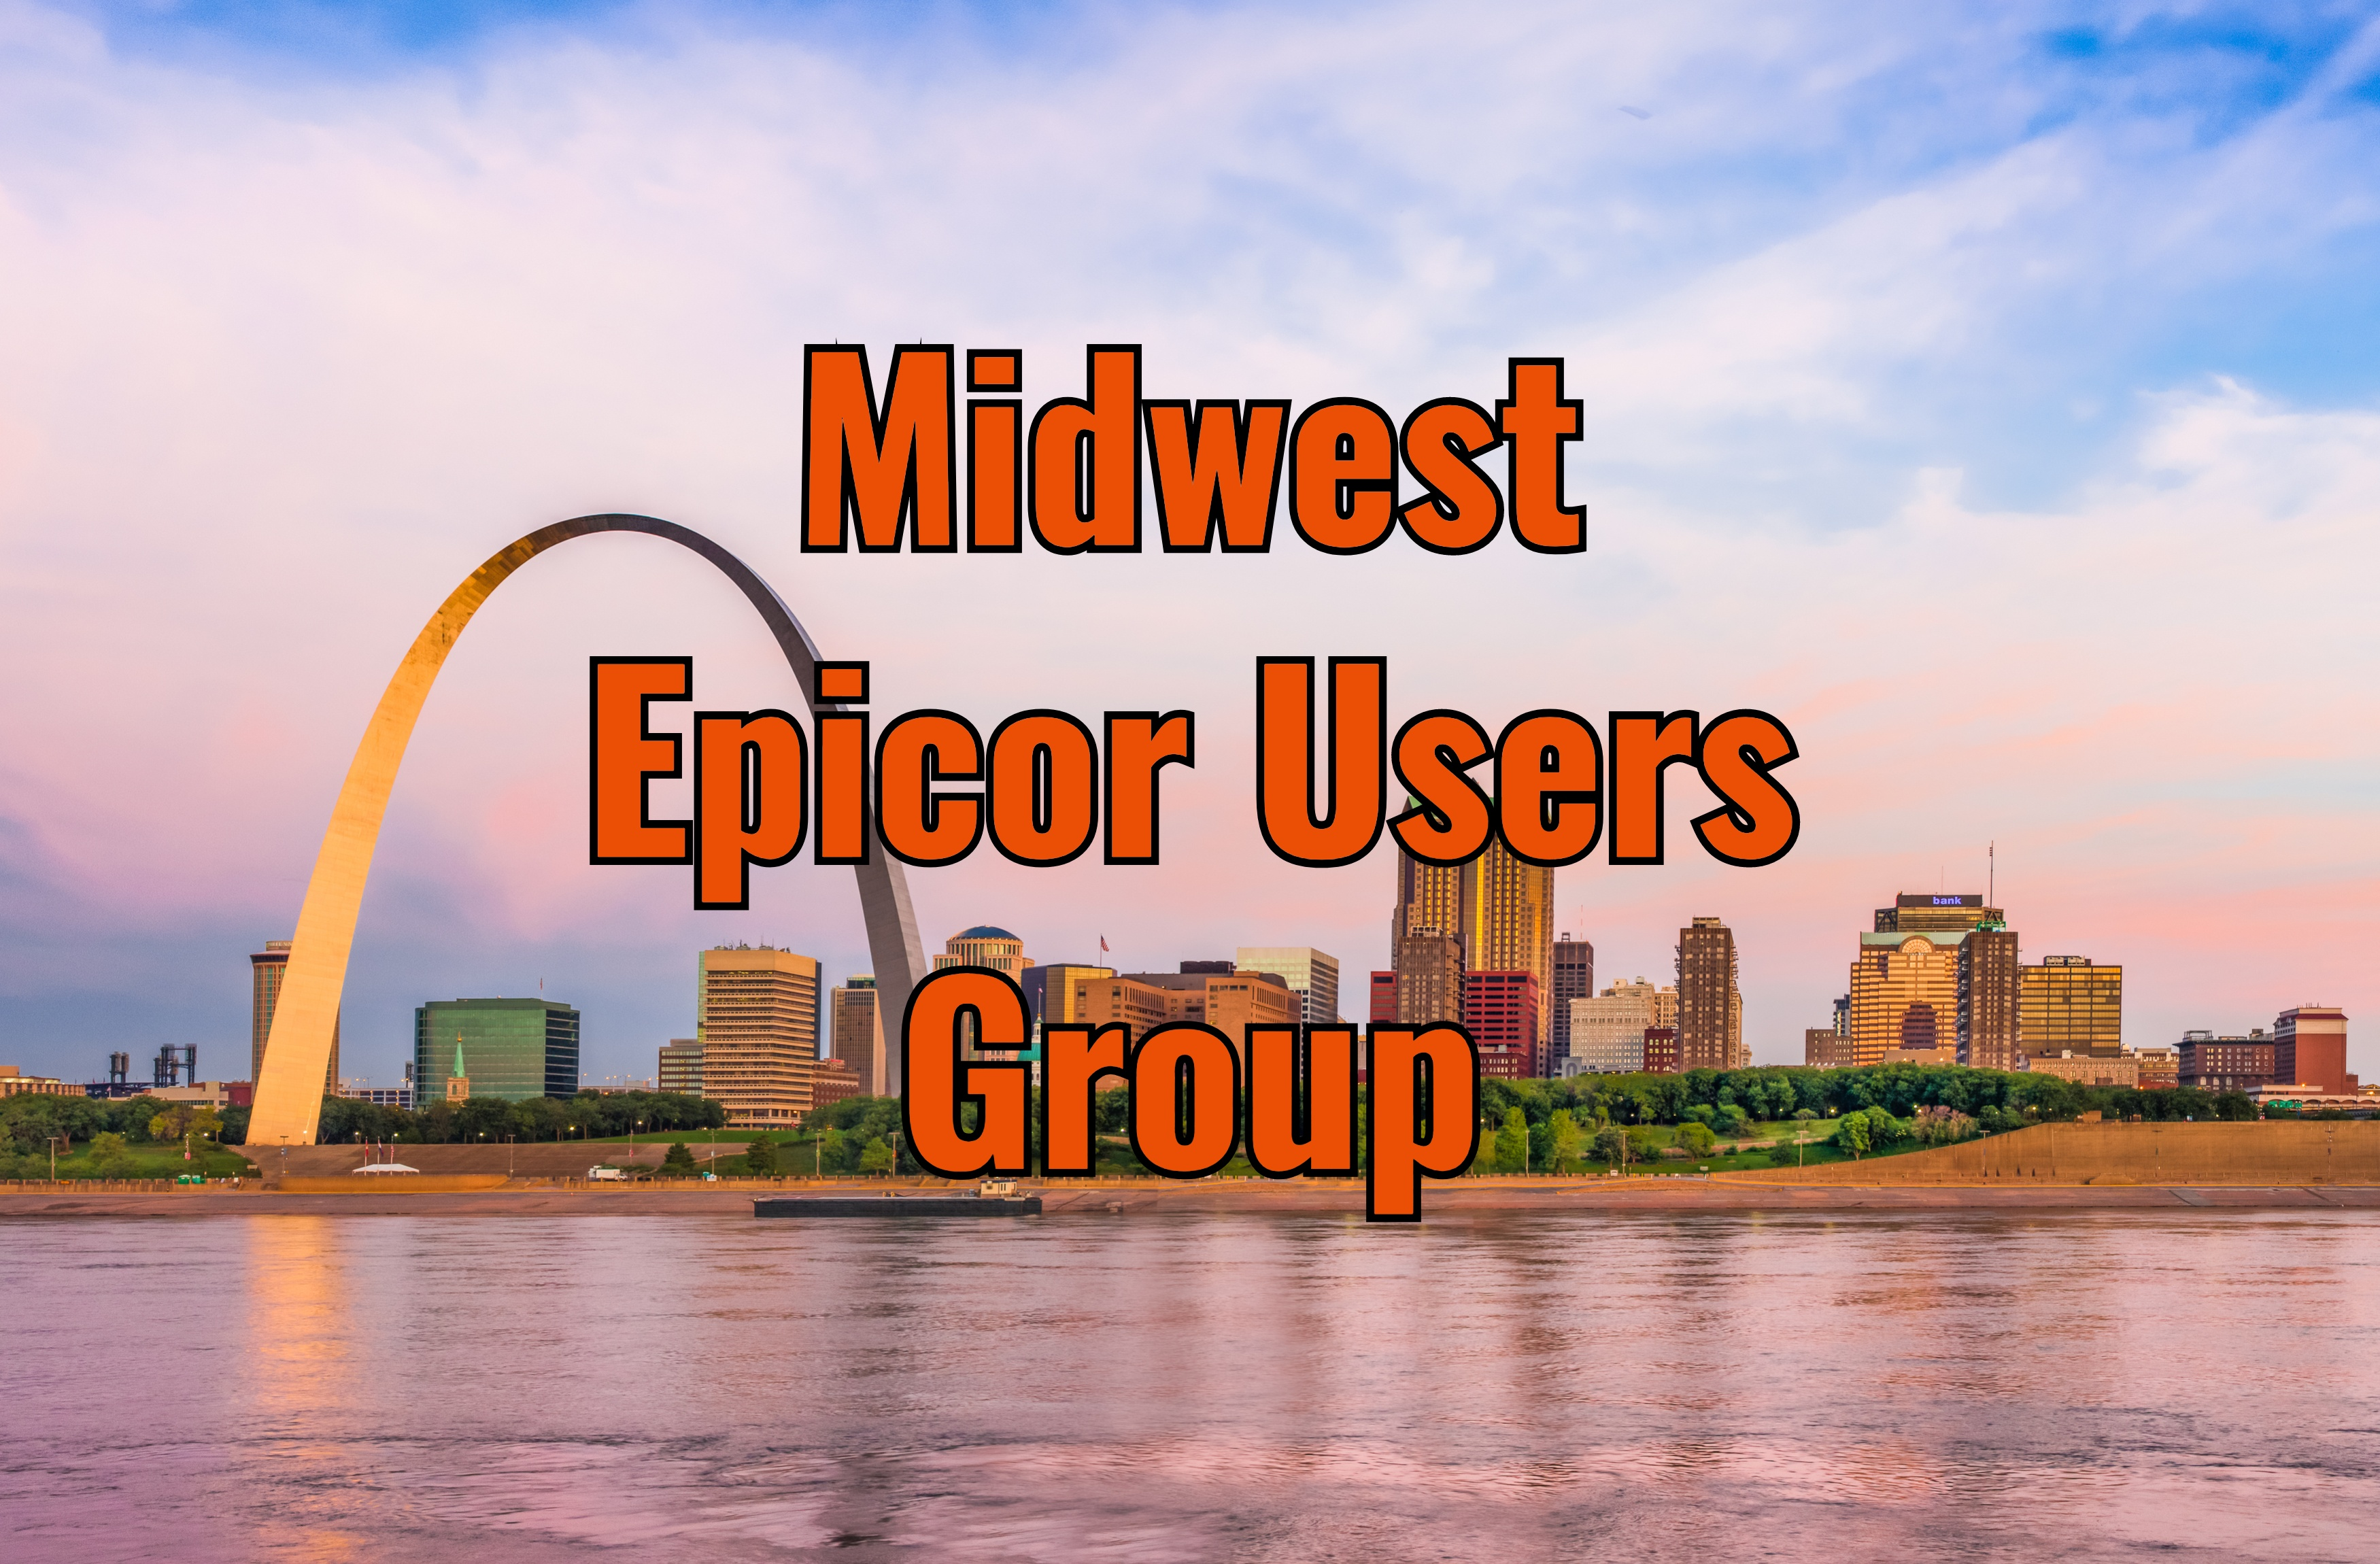 Midwest Epicor Users Group Reconvenes in January!